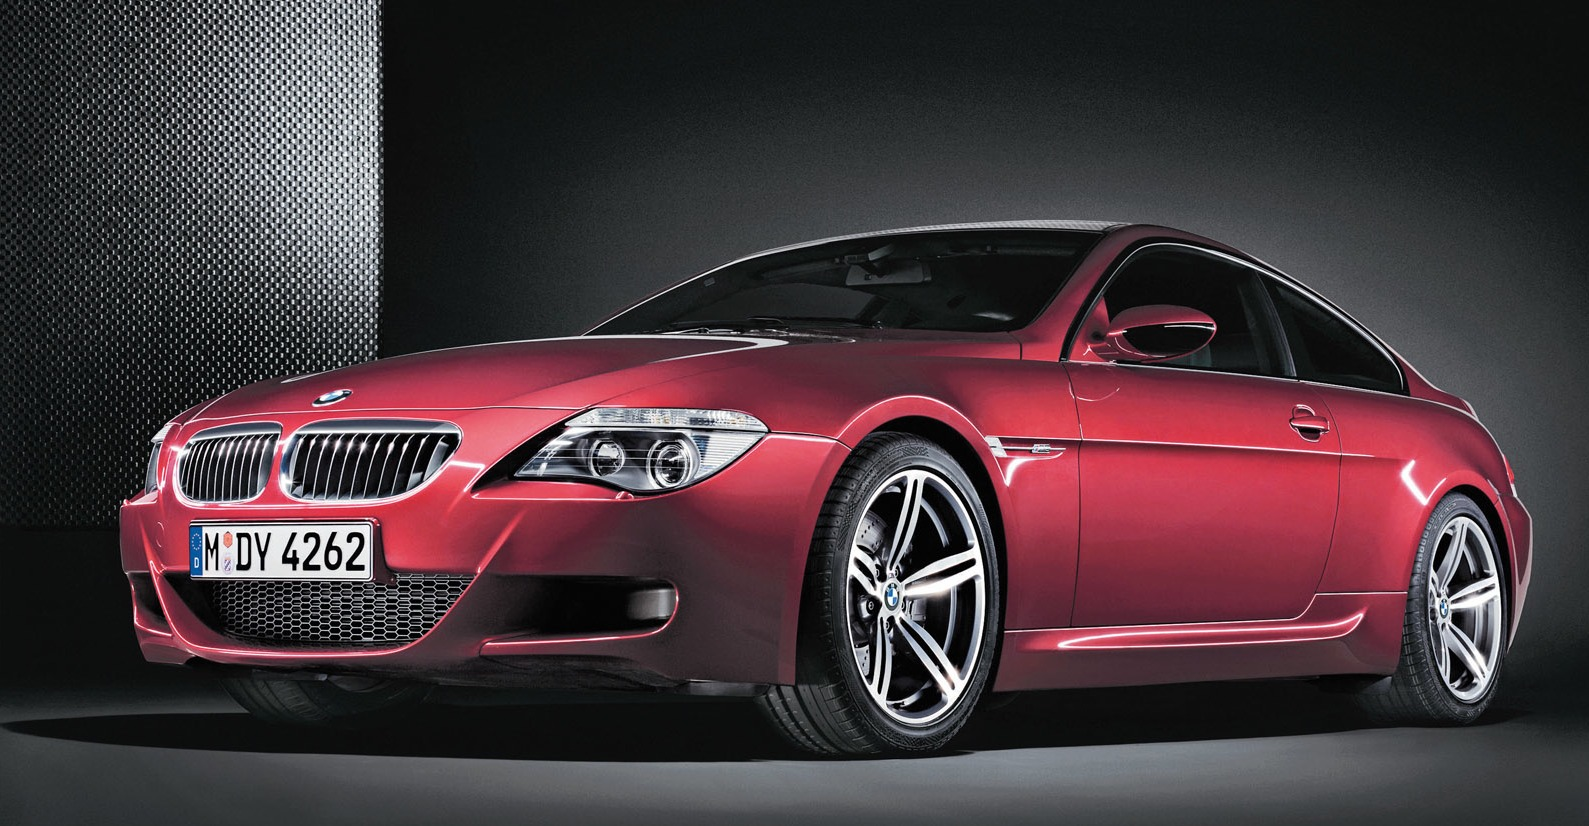 2006 bmw m6. Black Bedroom Furniture Sets. Home Design Ideas